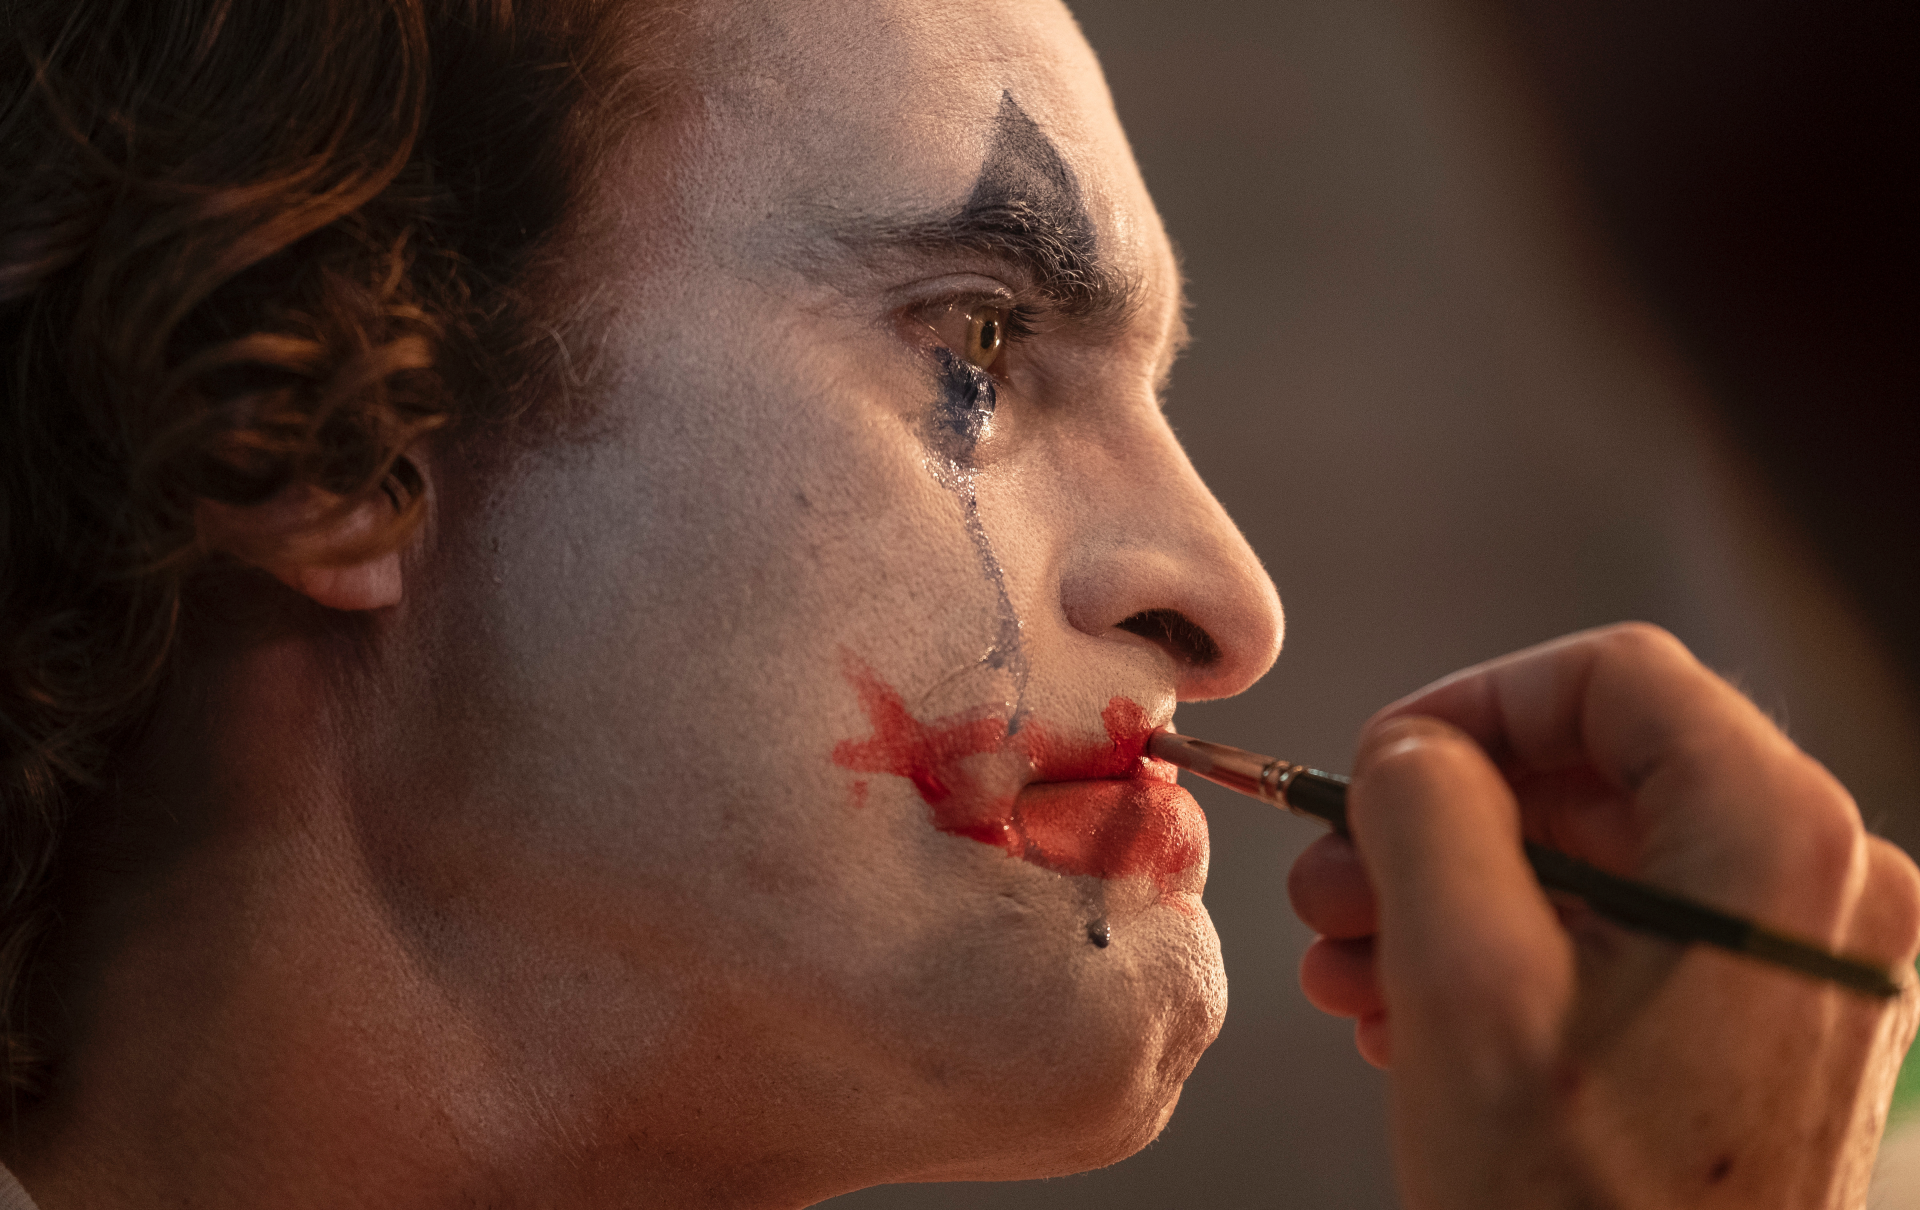 'Joker' star Joaquin Phoenix leaves interview after being asked if movie will 'inspire' violence